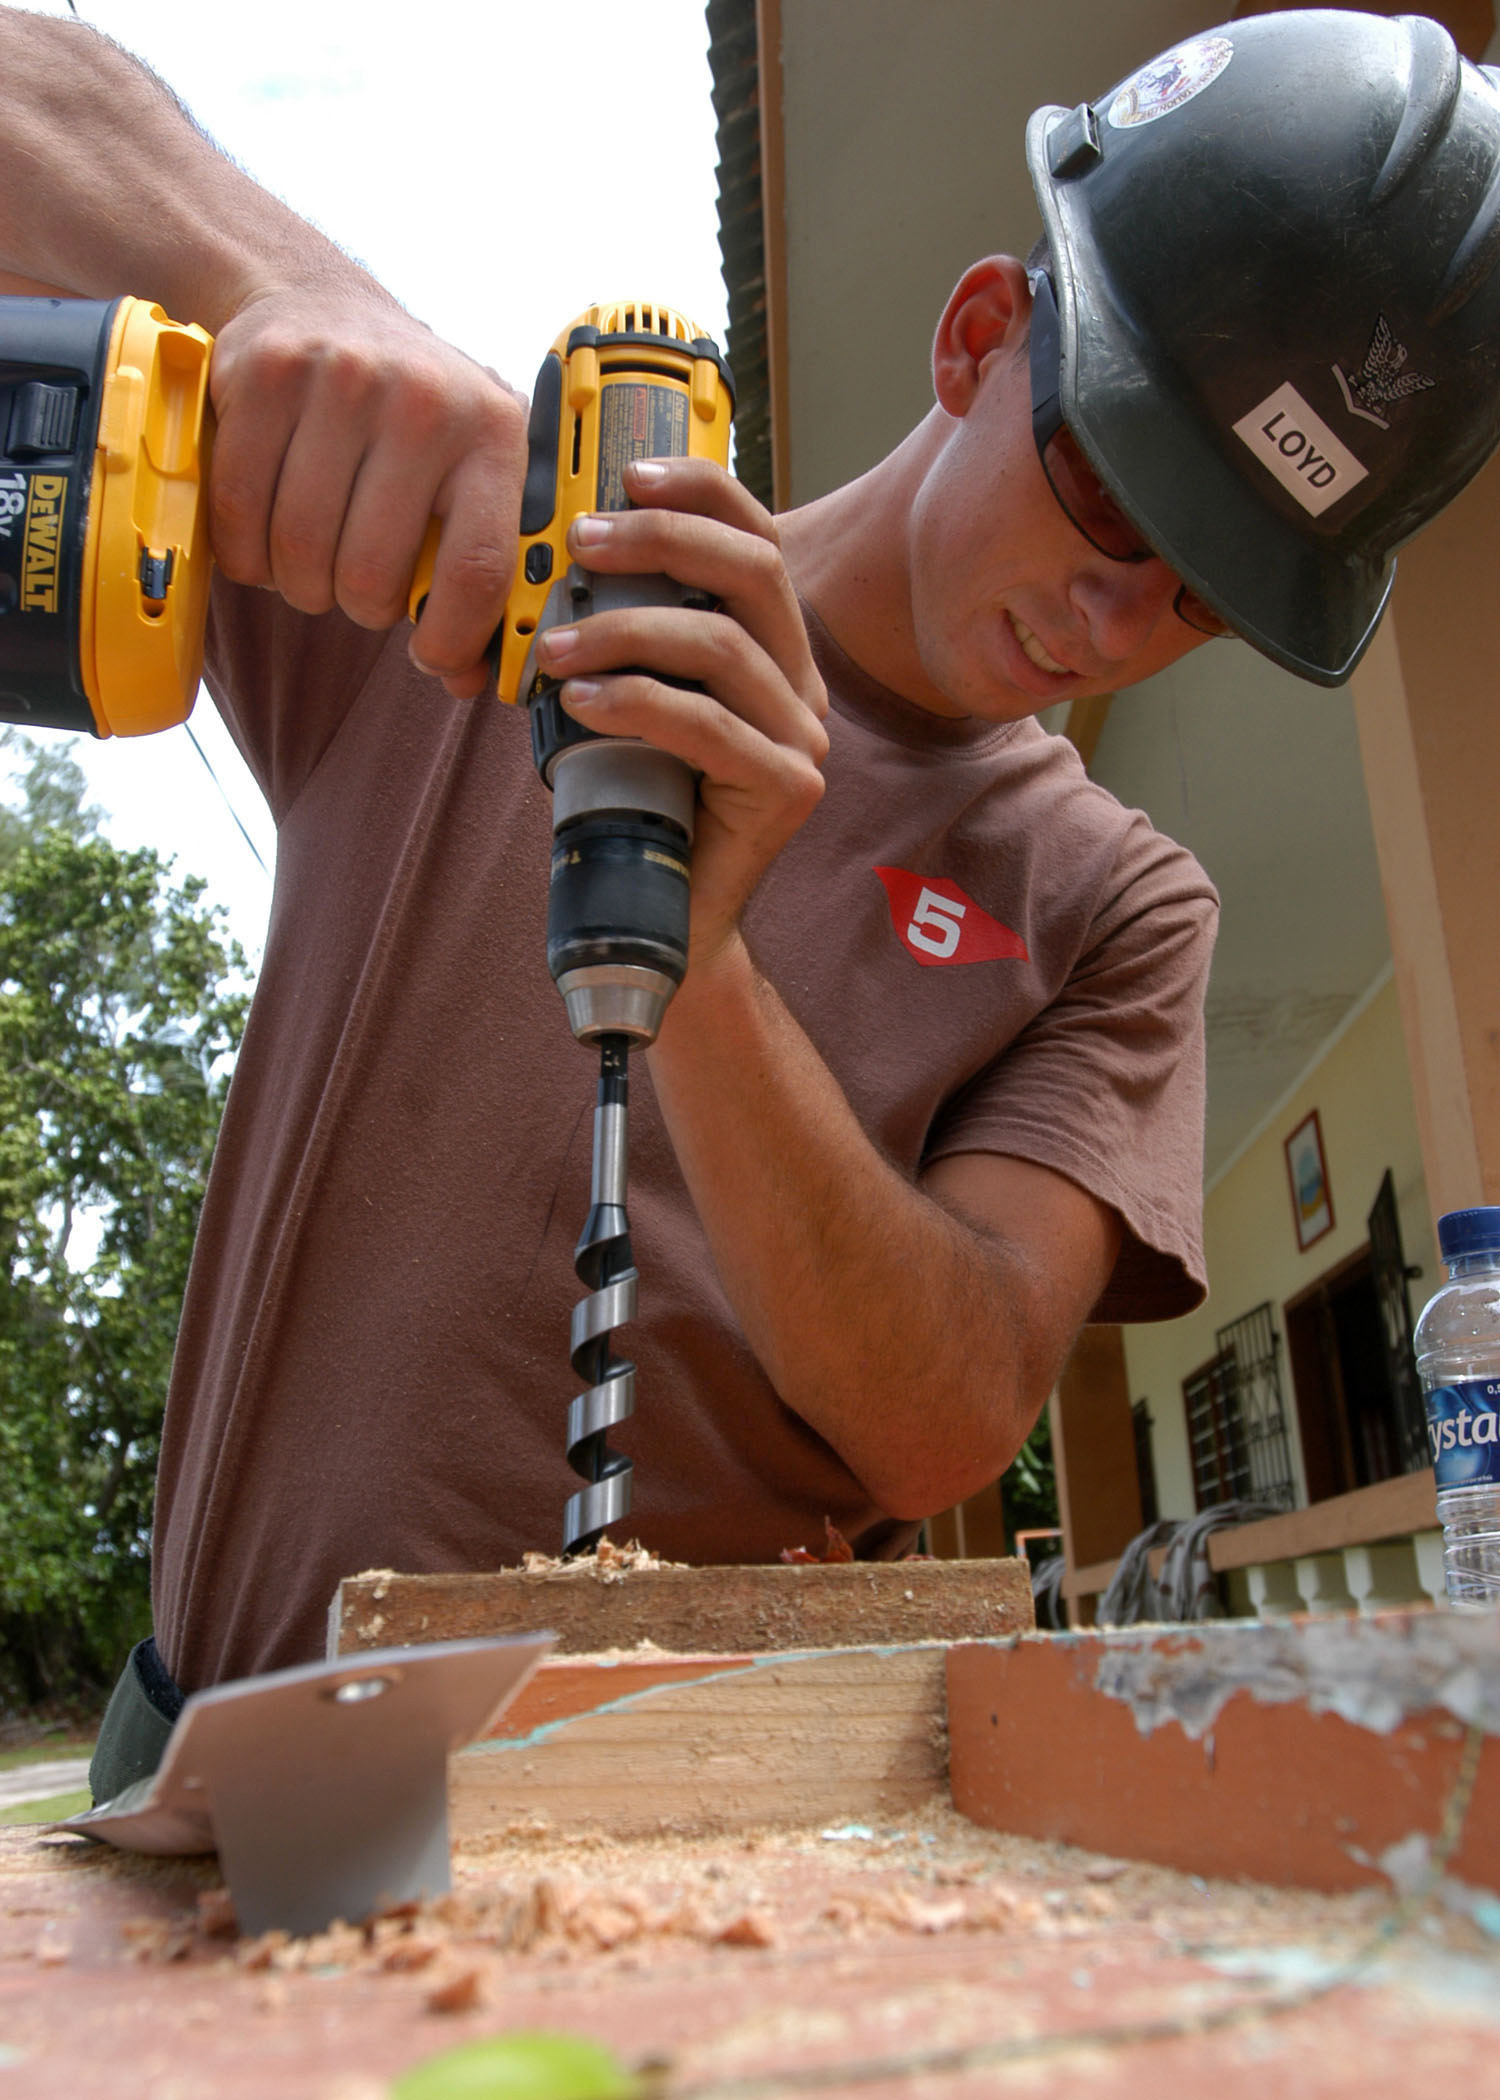 Cordless drills as the perfect drilling solution